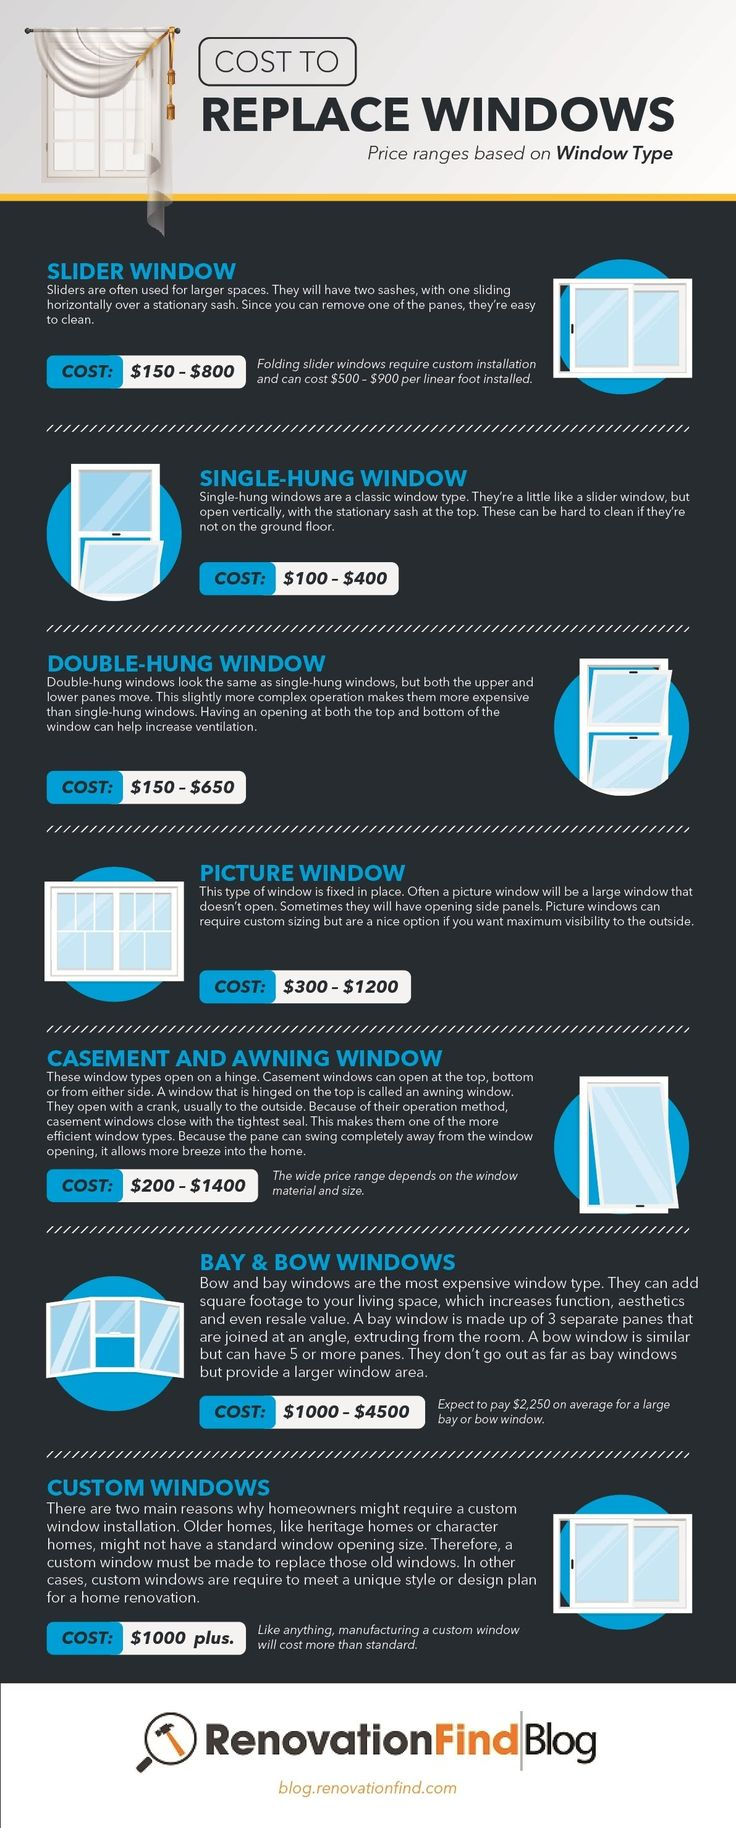 How Much Does It Cost to Replace Windows? infographic